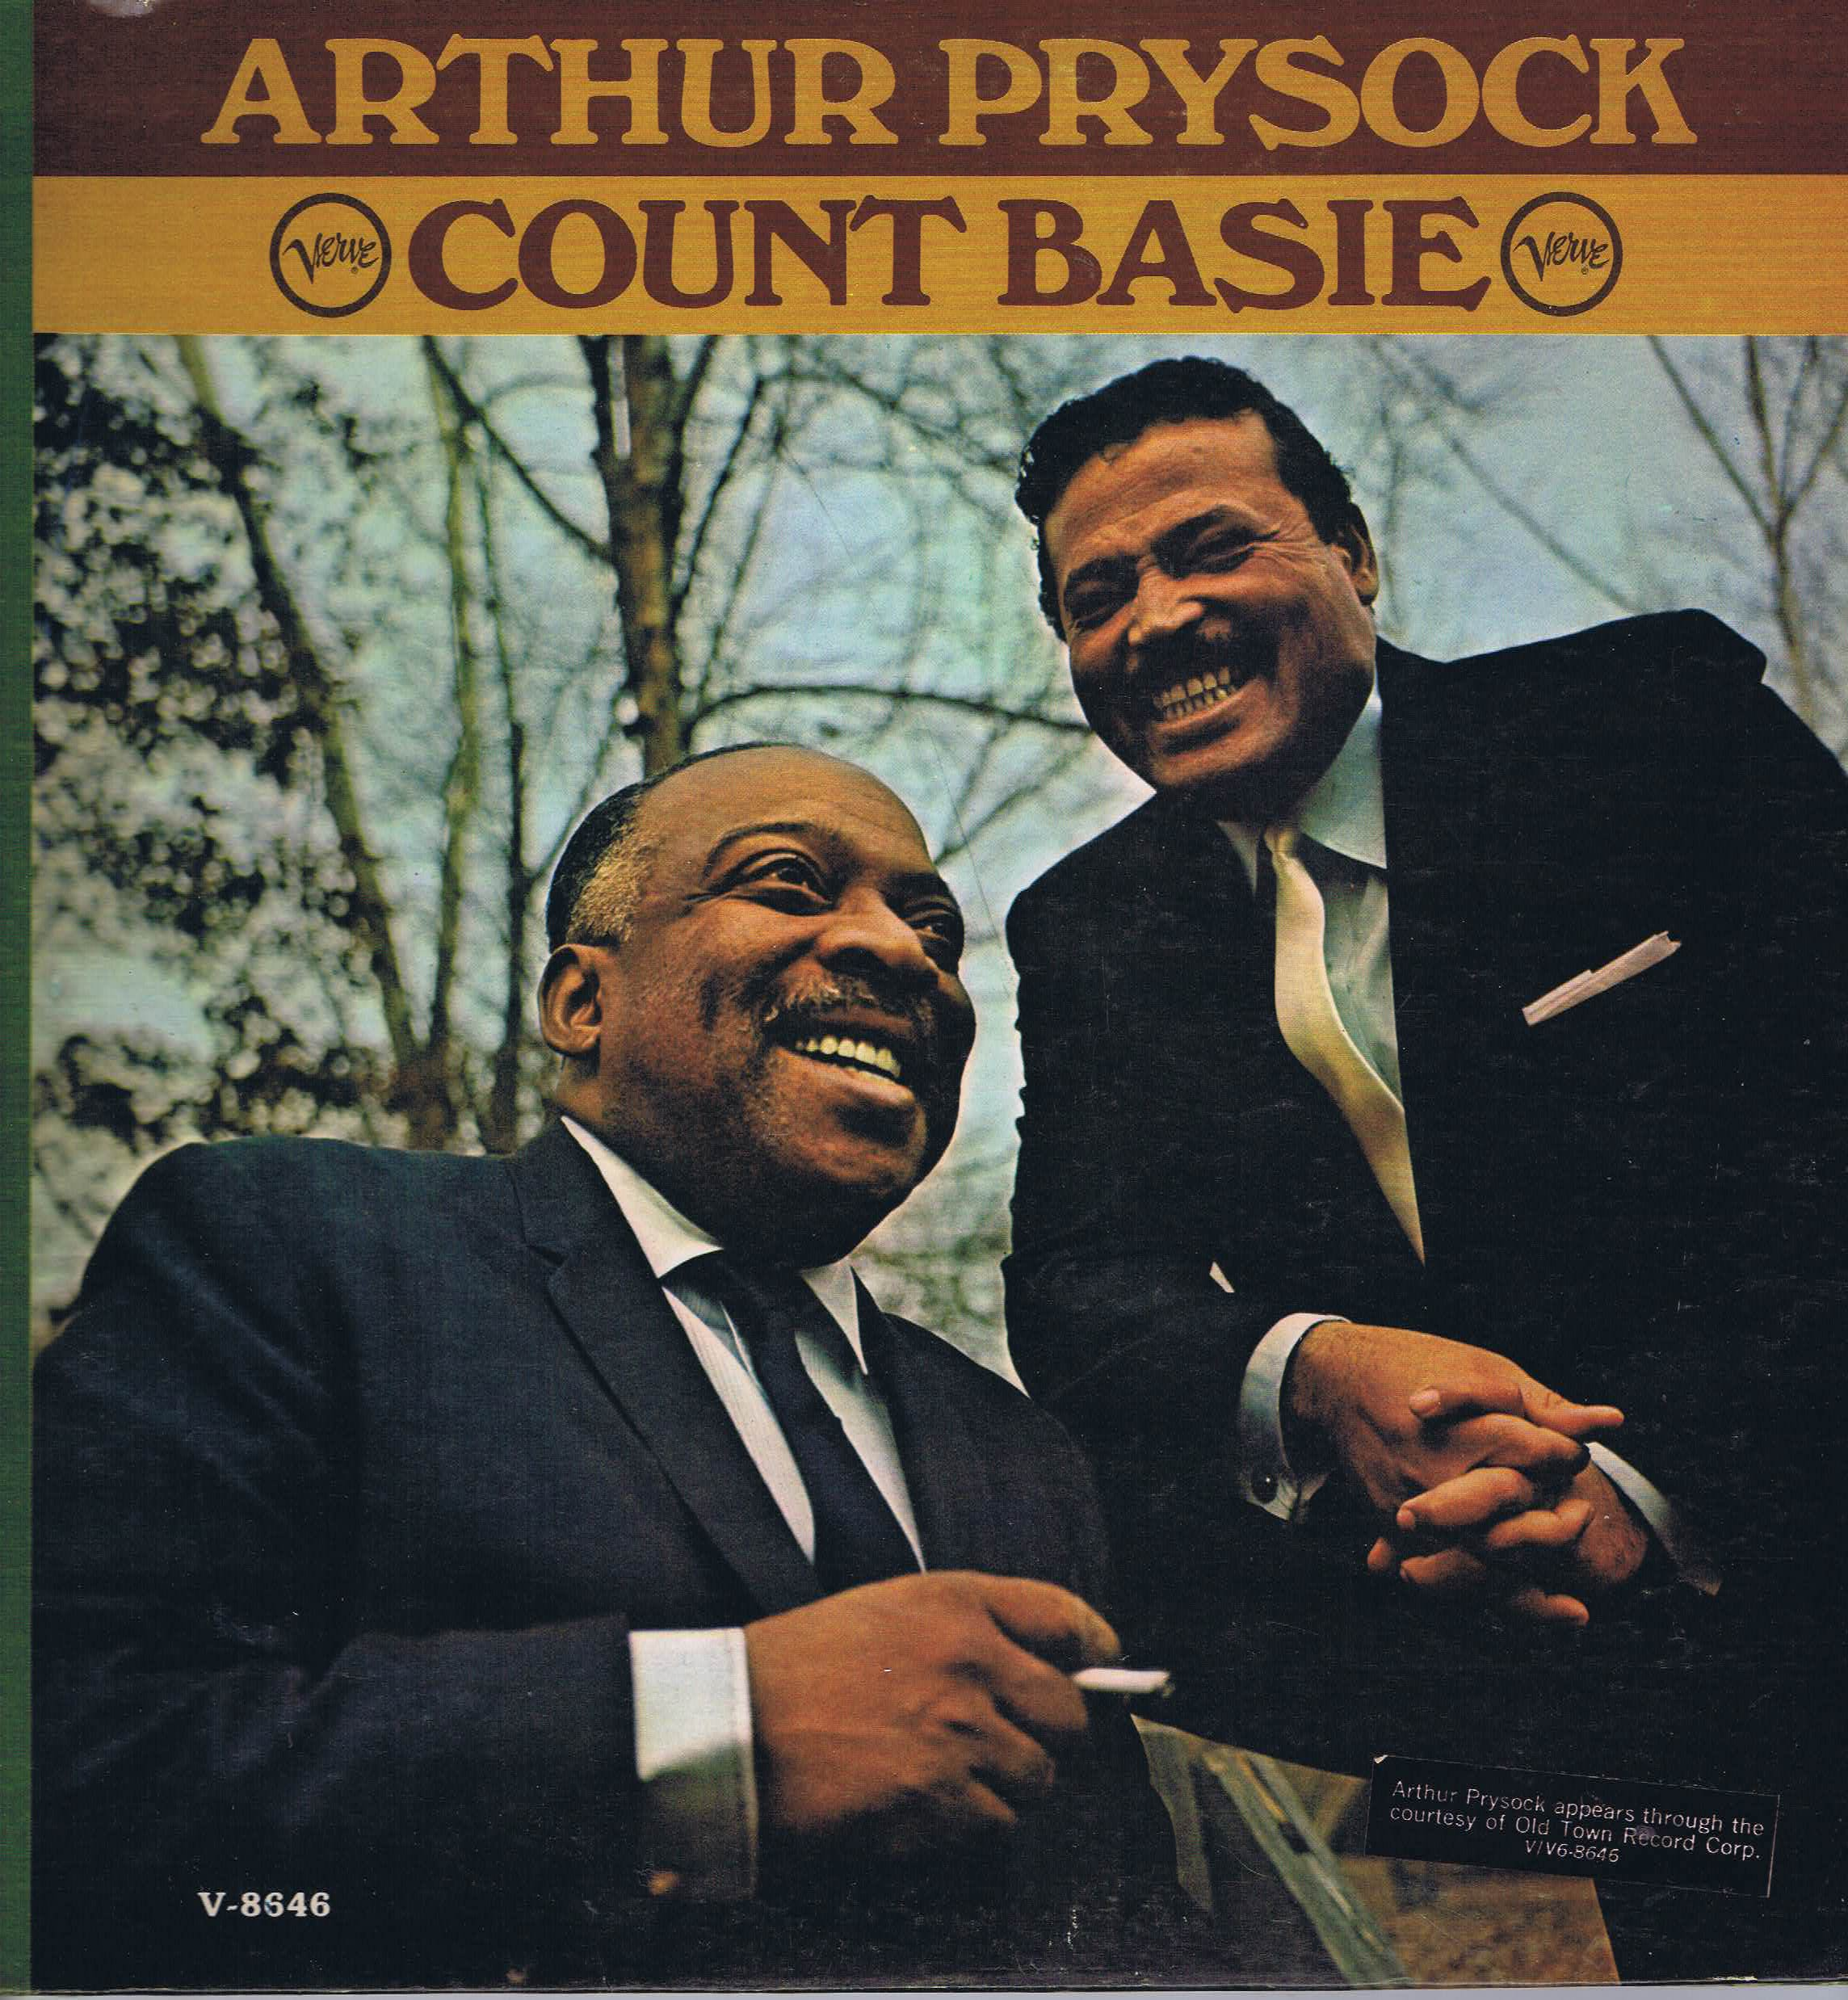 arthur prysock and count basie